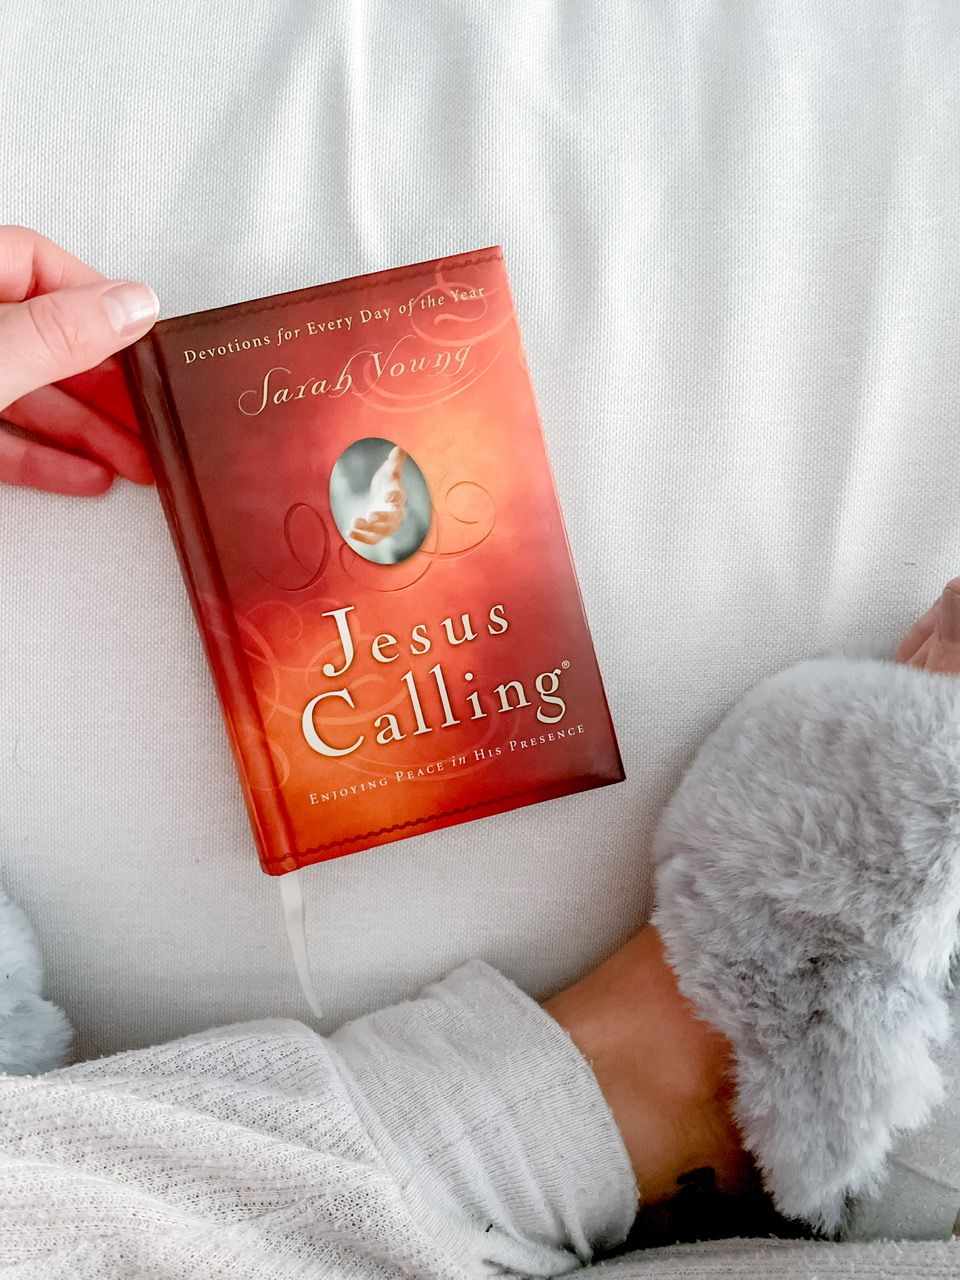 Self-care with my daily morning ritual of my Jesus Calling devotional and meditation.